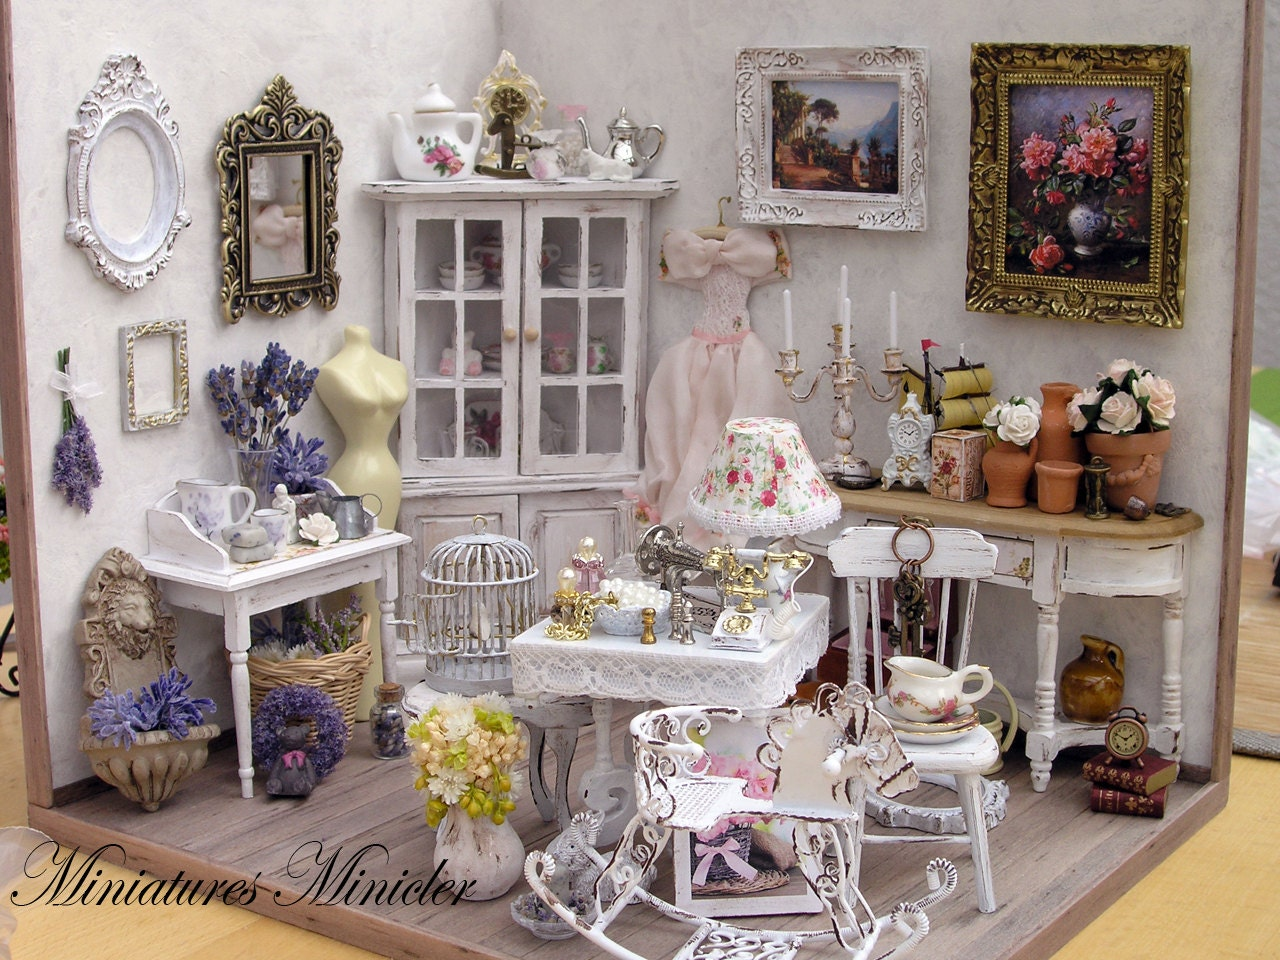 miniature dollhouse parisian antique shop shabby chic style. Black Bedroom Furniture Sets. Home Design Ideas